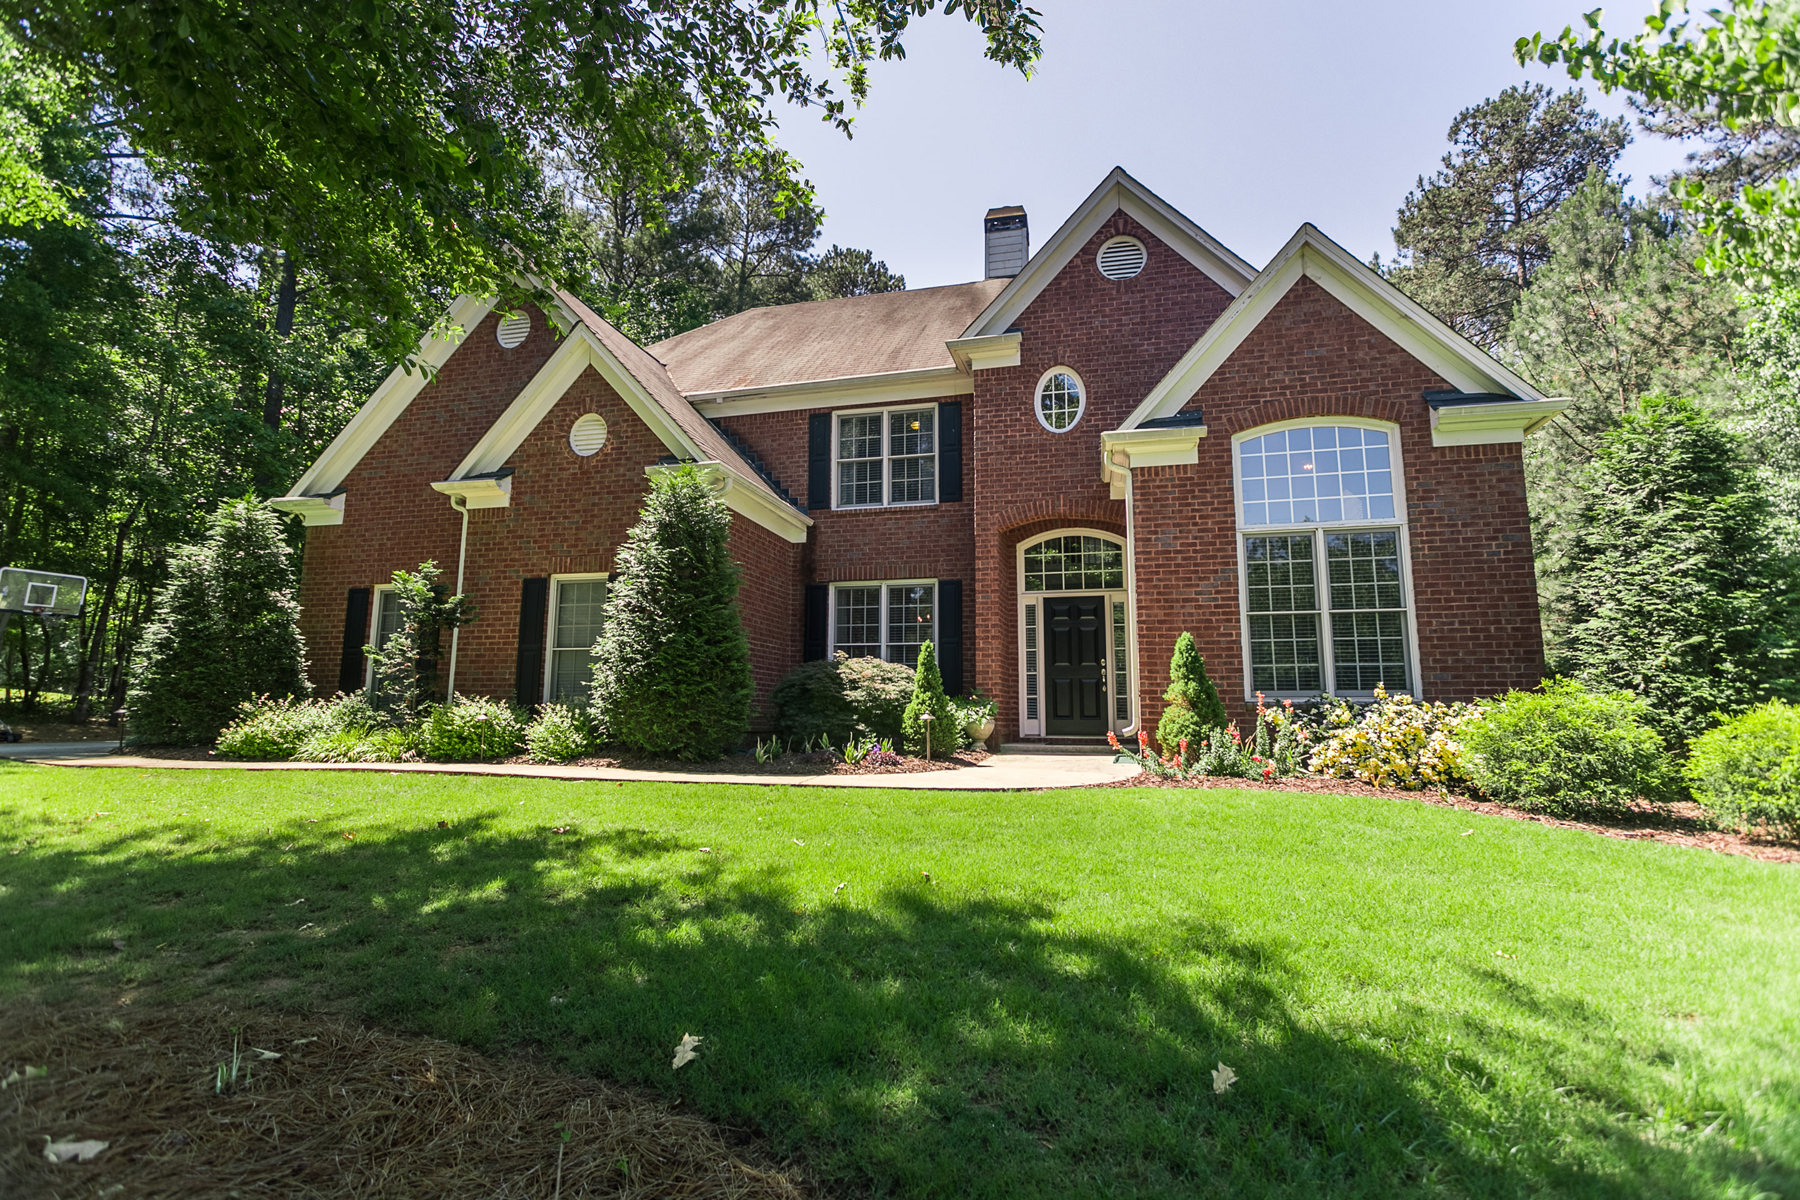 獨棟家庭住宅 為 出售 在 Awesome Updated Home On Cul-de-sac In Timber Lake 145 Woodmere Lane Fayetteville, 喬治亞州, 30215 美國